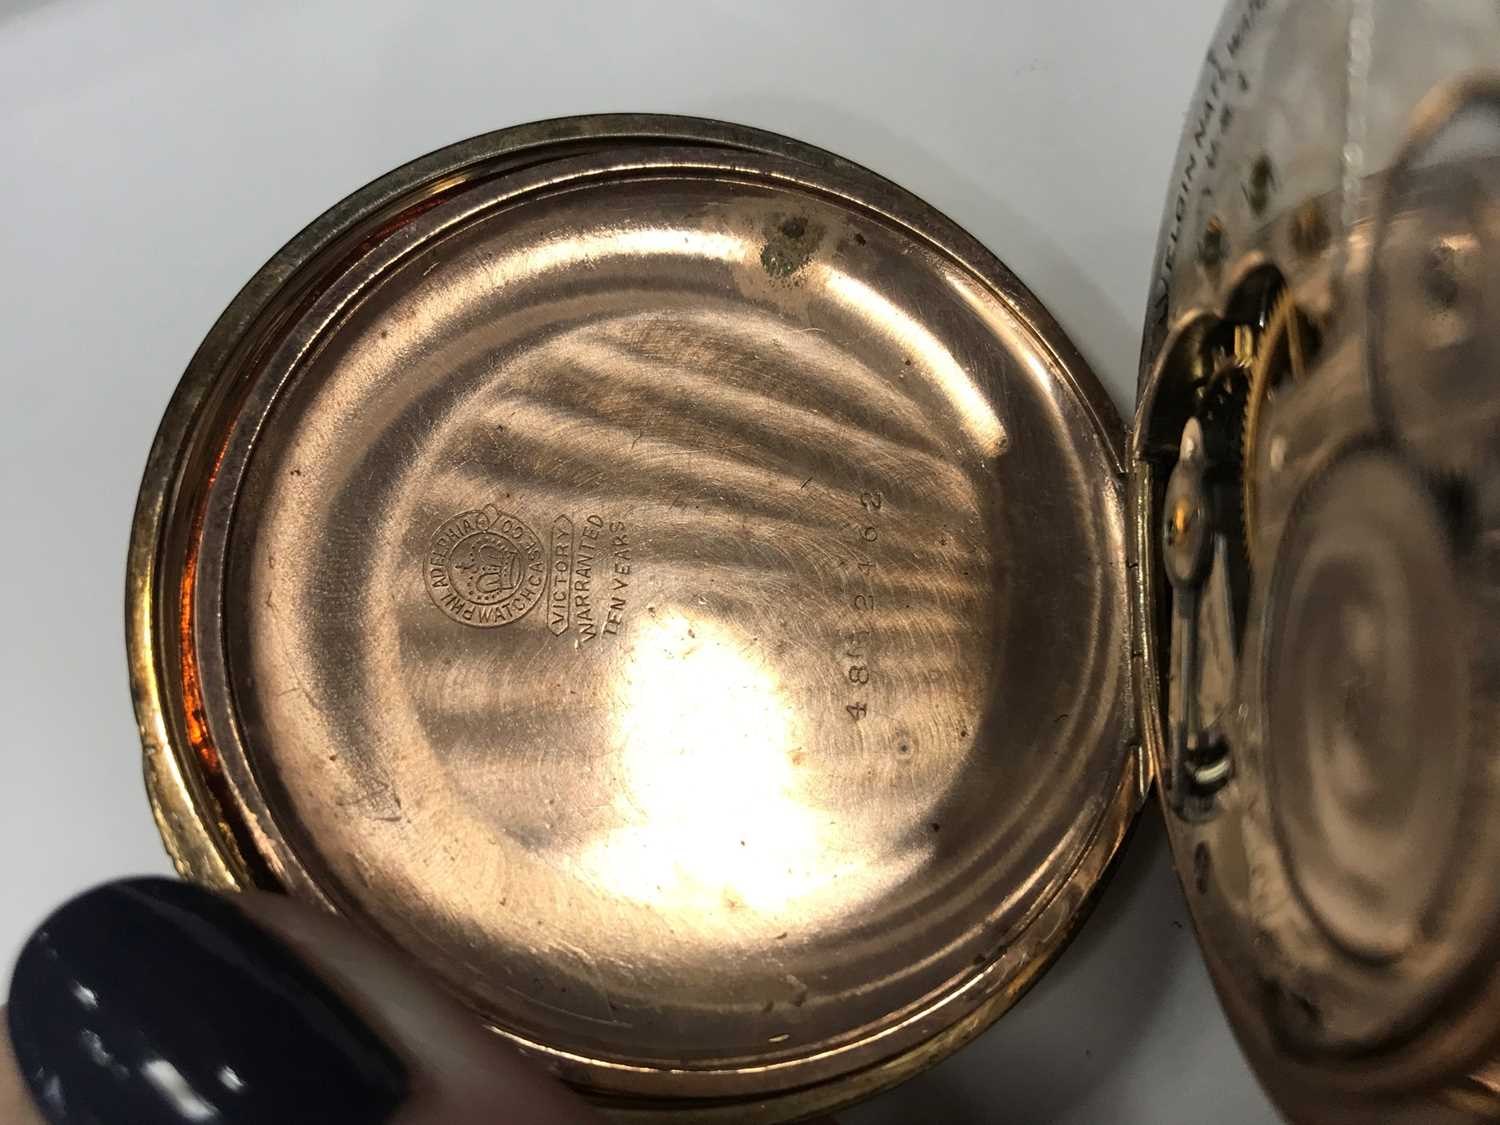 A GOLD PLATED ELGIN POCKET WATCH AND A GOLD WATCH CHAIN - Image 5 of 6